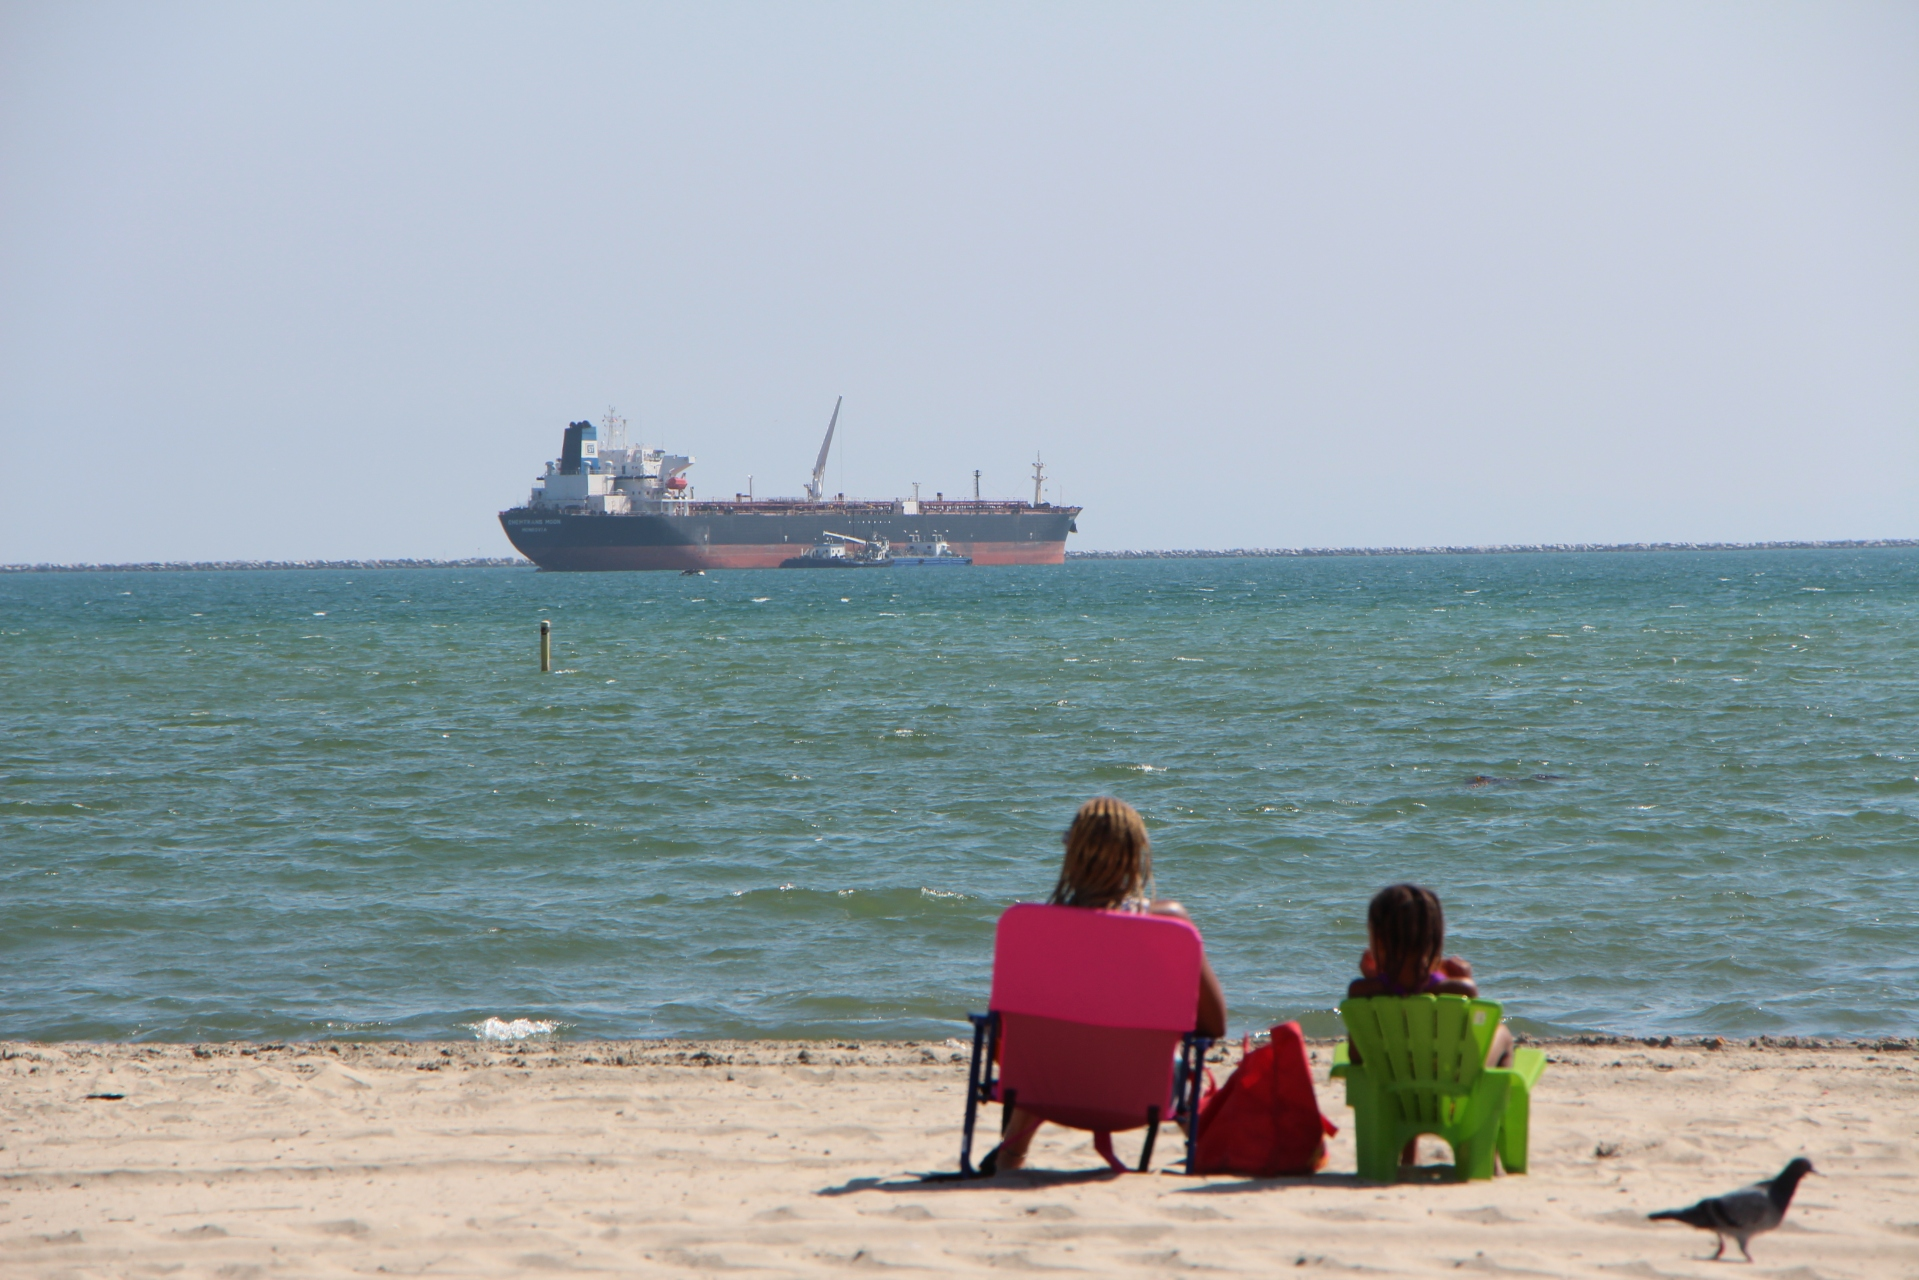 In this photo: a mother and child relax at the beach as a shipping container ship floats out in the Pacific Ocean close to shore